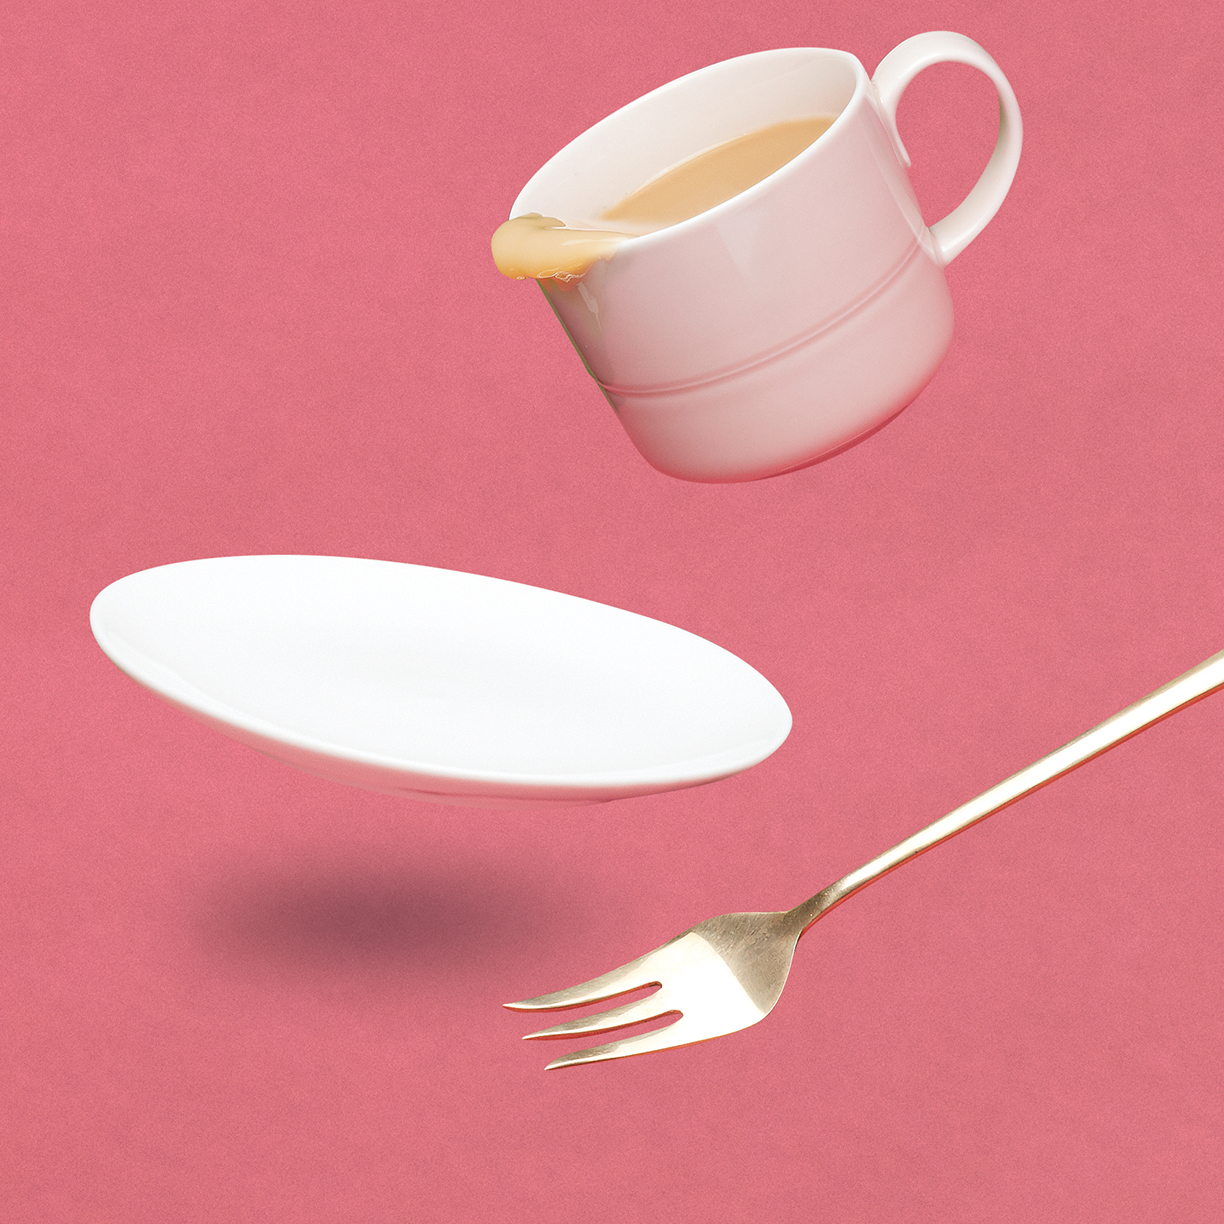 Cup, saucer, spoon, as the new weed revolution takes over